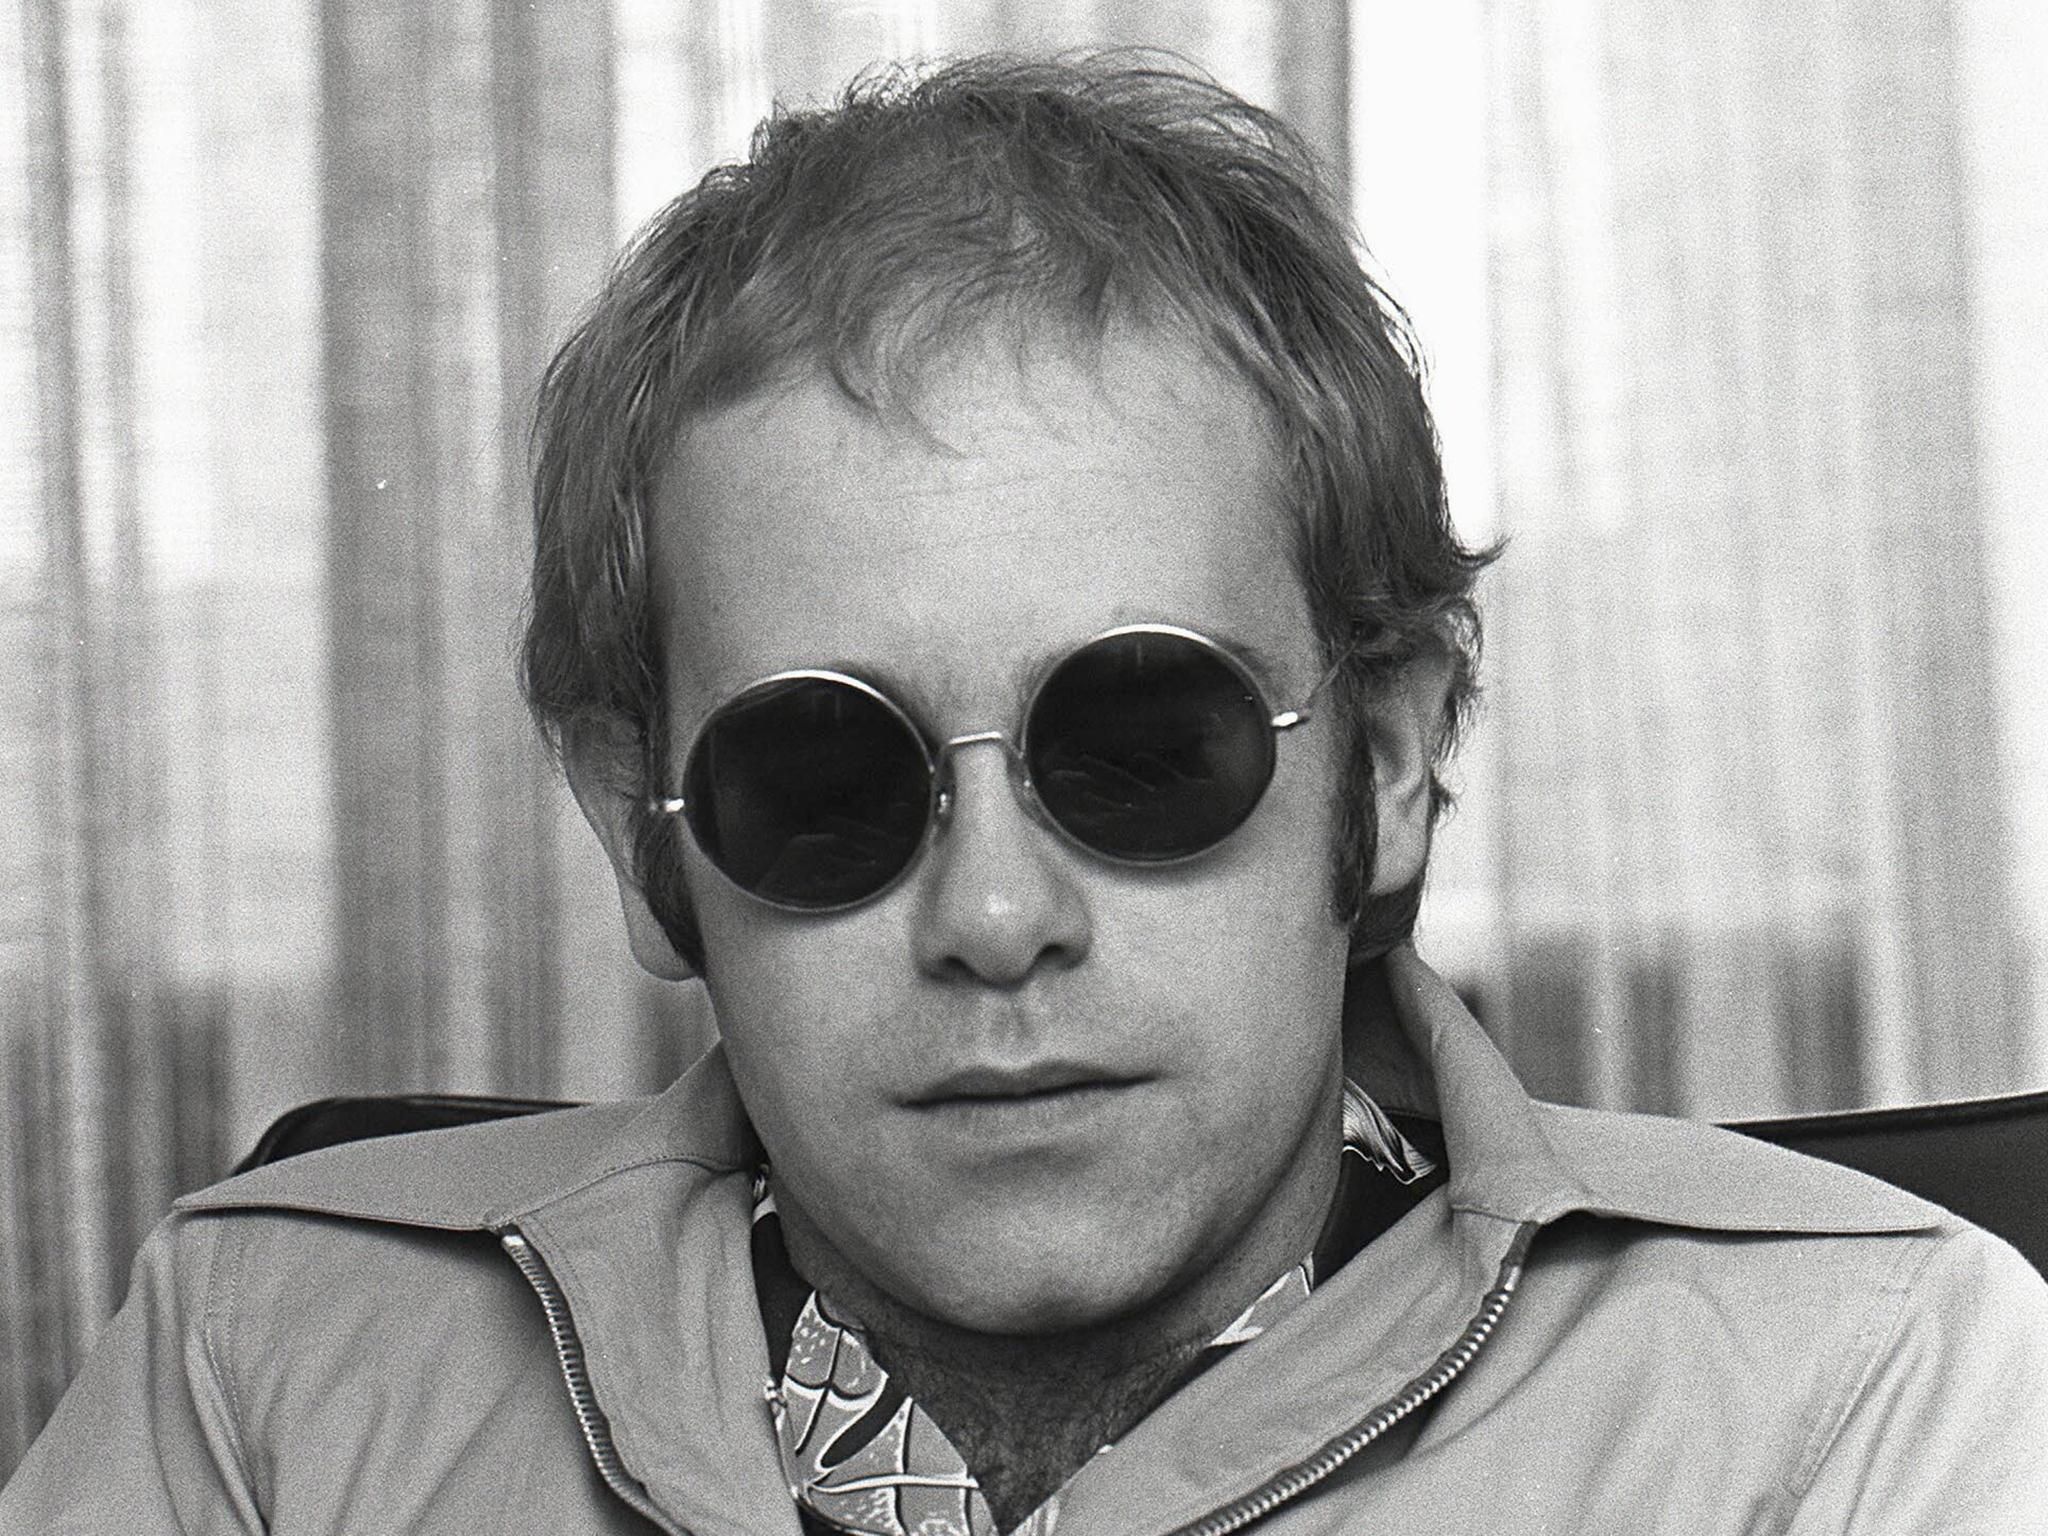 The Top 10: Underrated Elton John songs